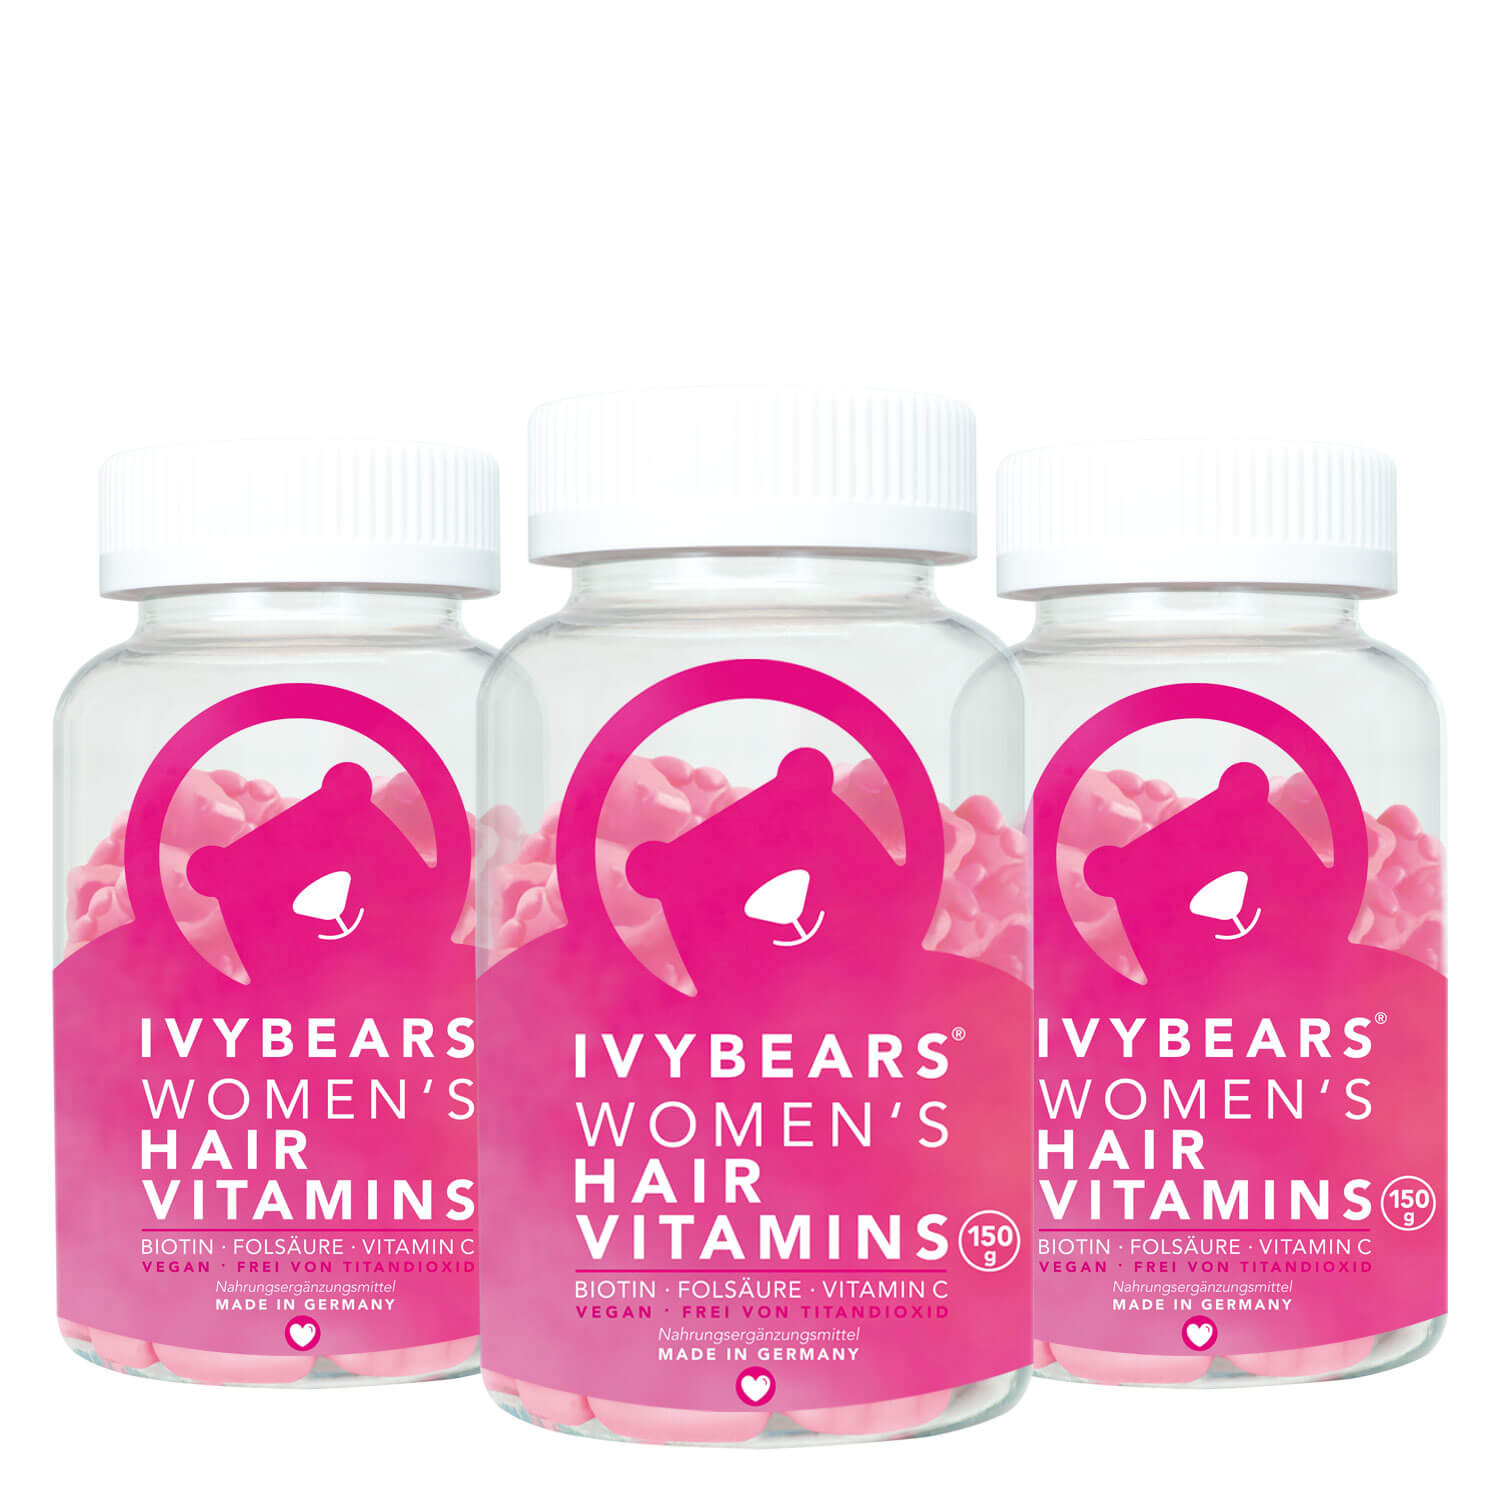 Ivybears - Women's Hair Vitamins 3 Monate